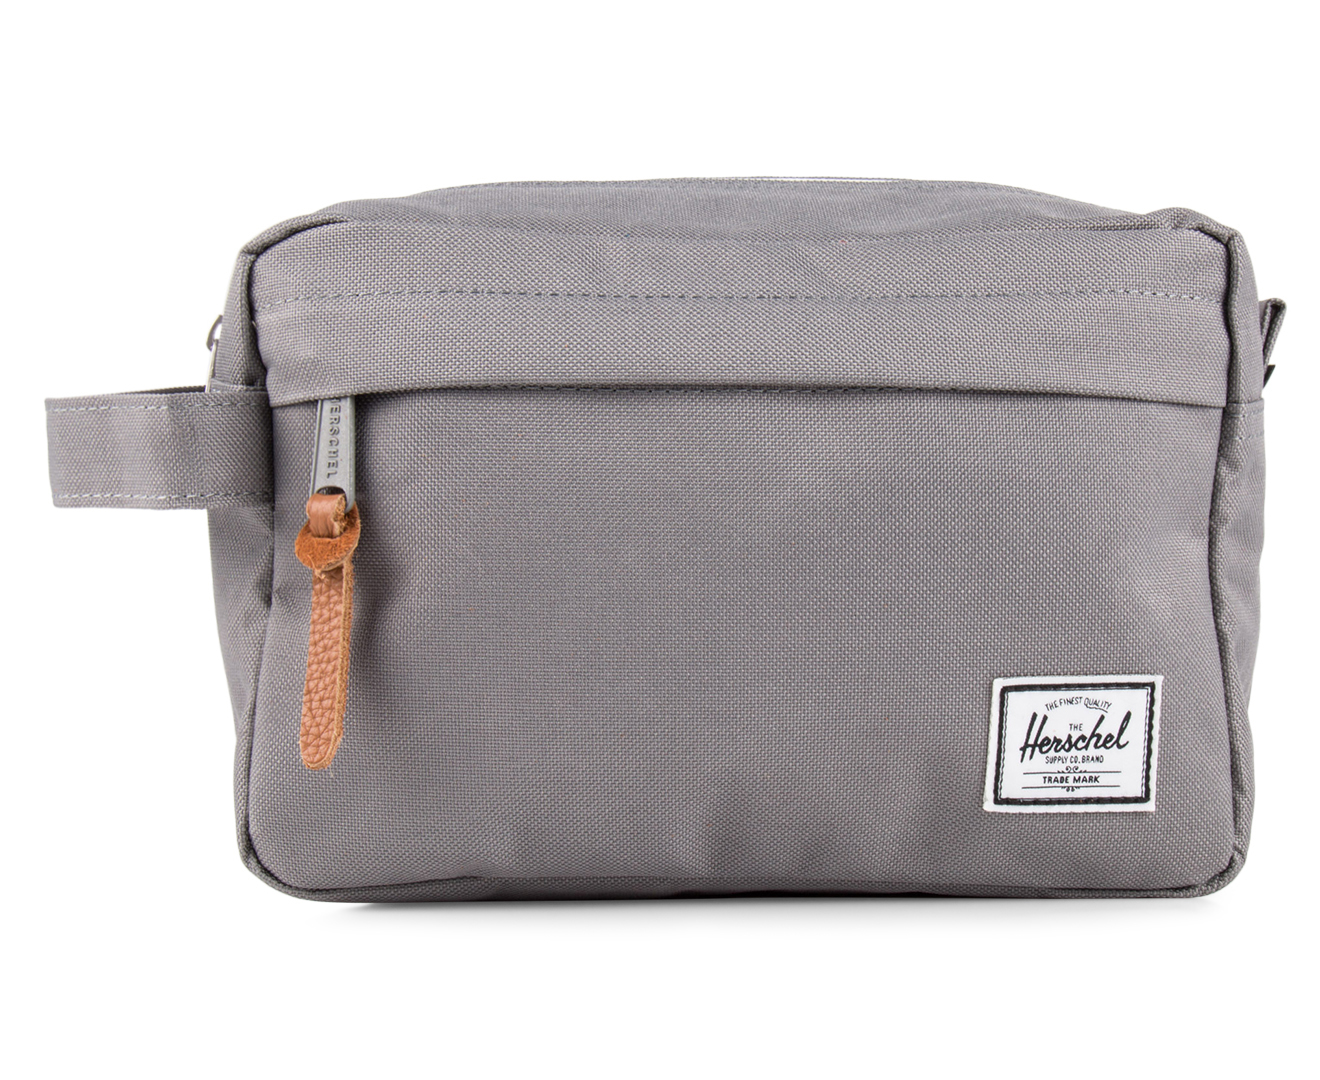 abeed9a4f810 Herschel Supply Co 4L Chapter Toiletry Bag - Grey